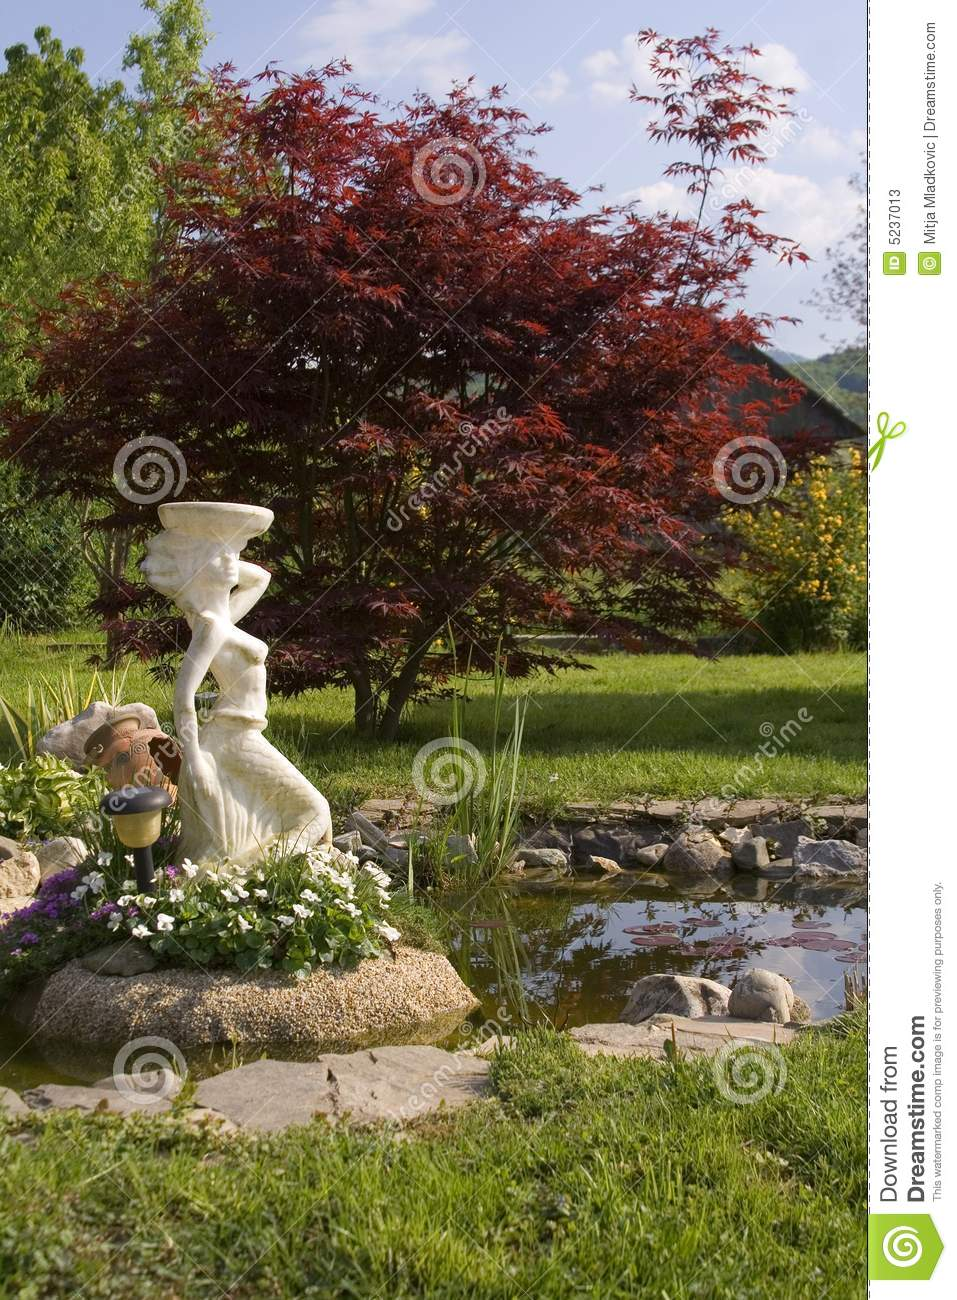 Stsatuette For Outdoor Ponds: Statue In Garden Pond Stock Image. Image Of Blooming